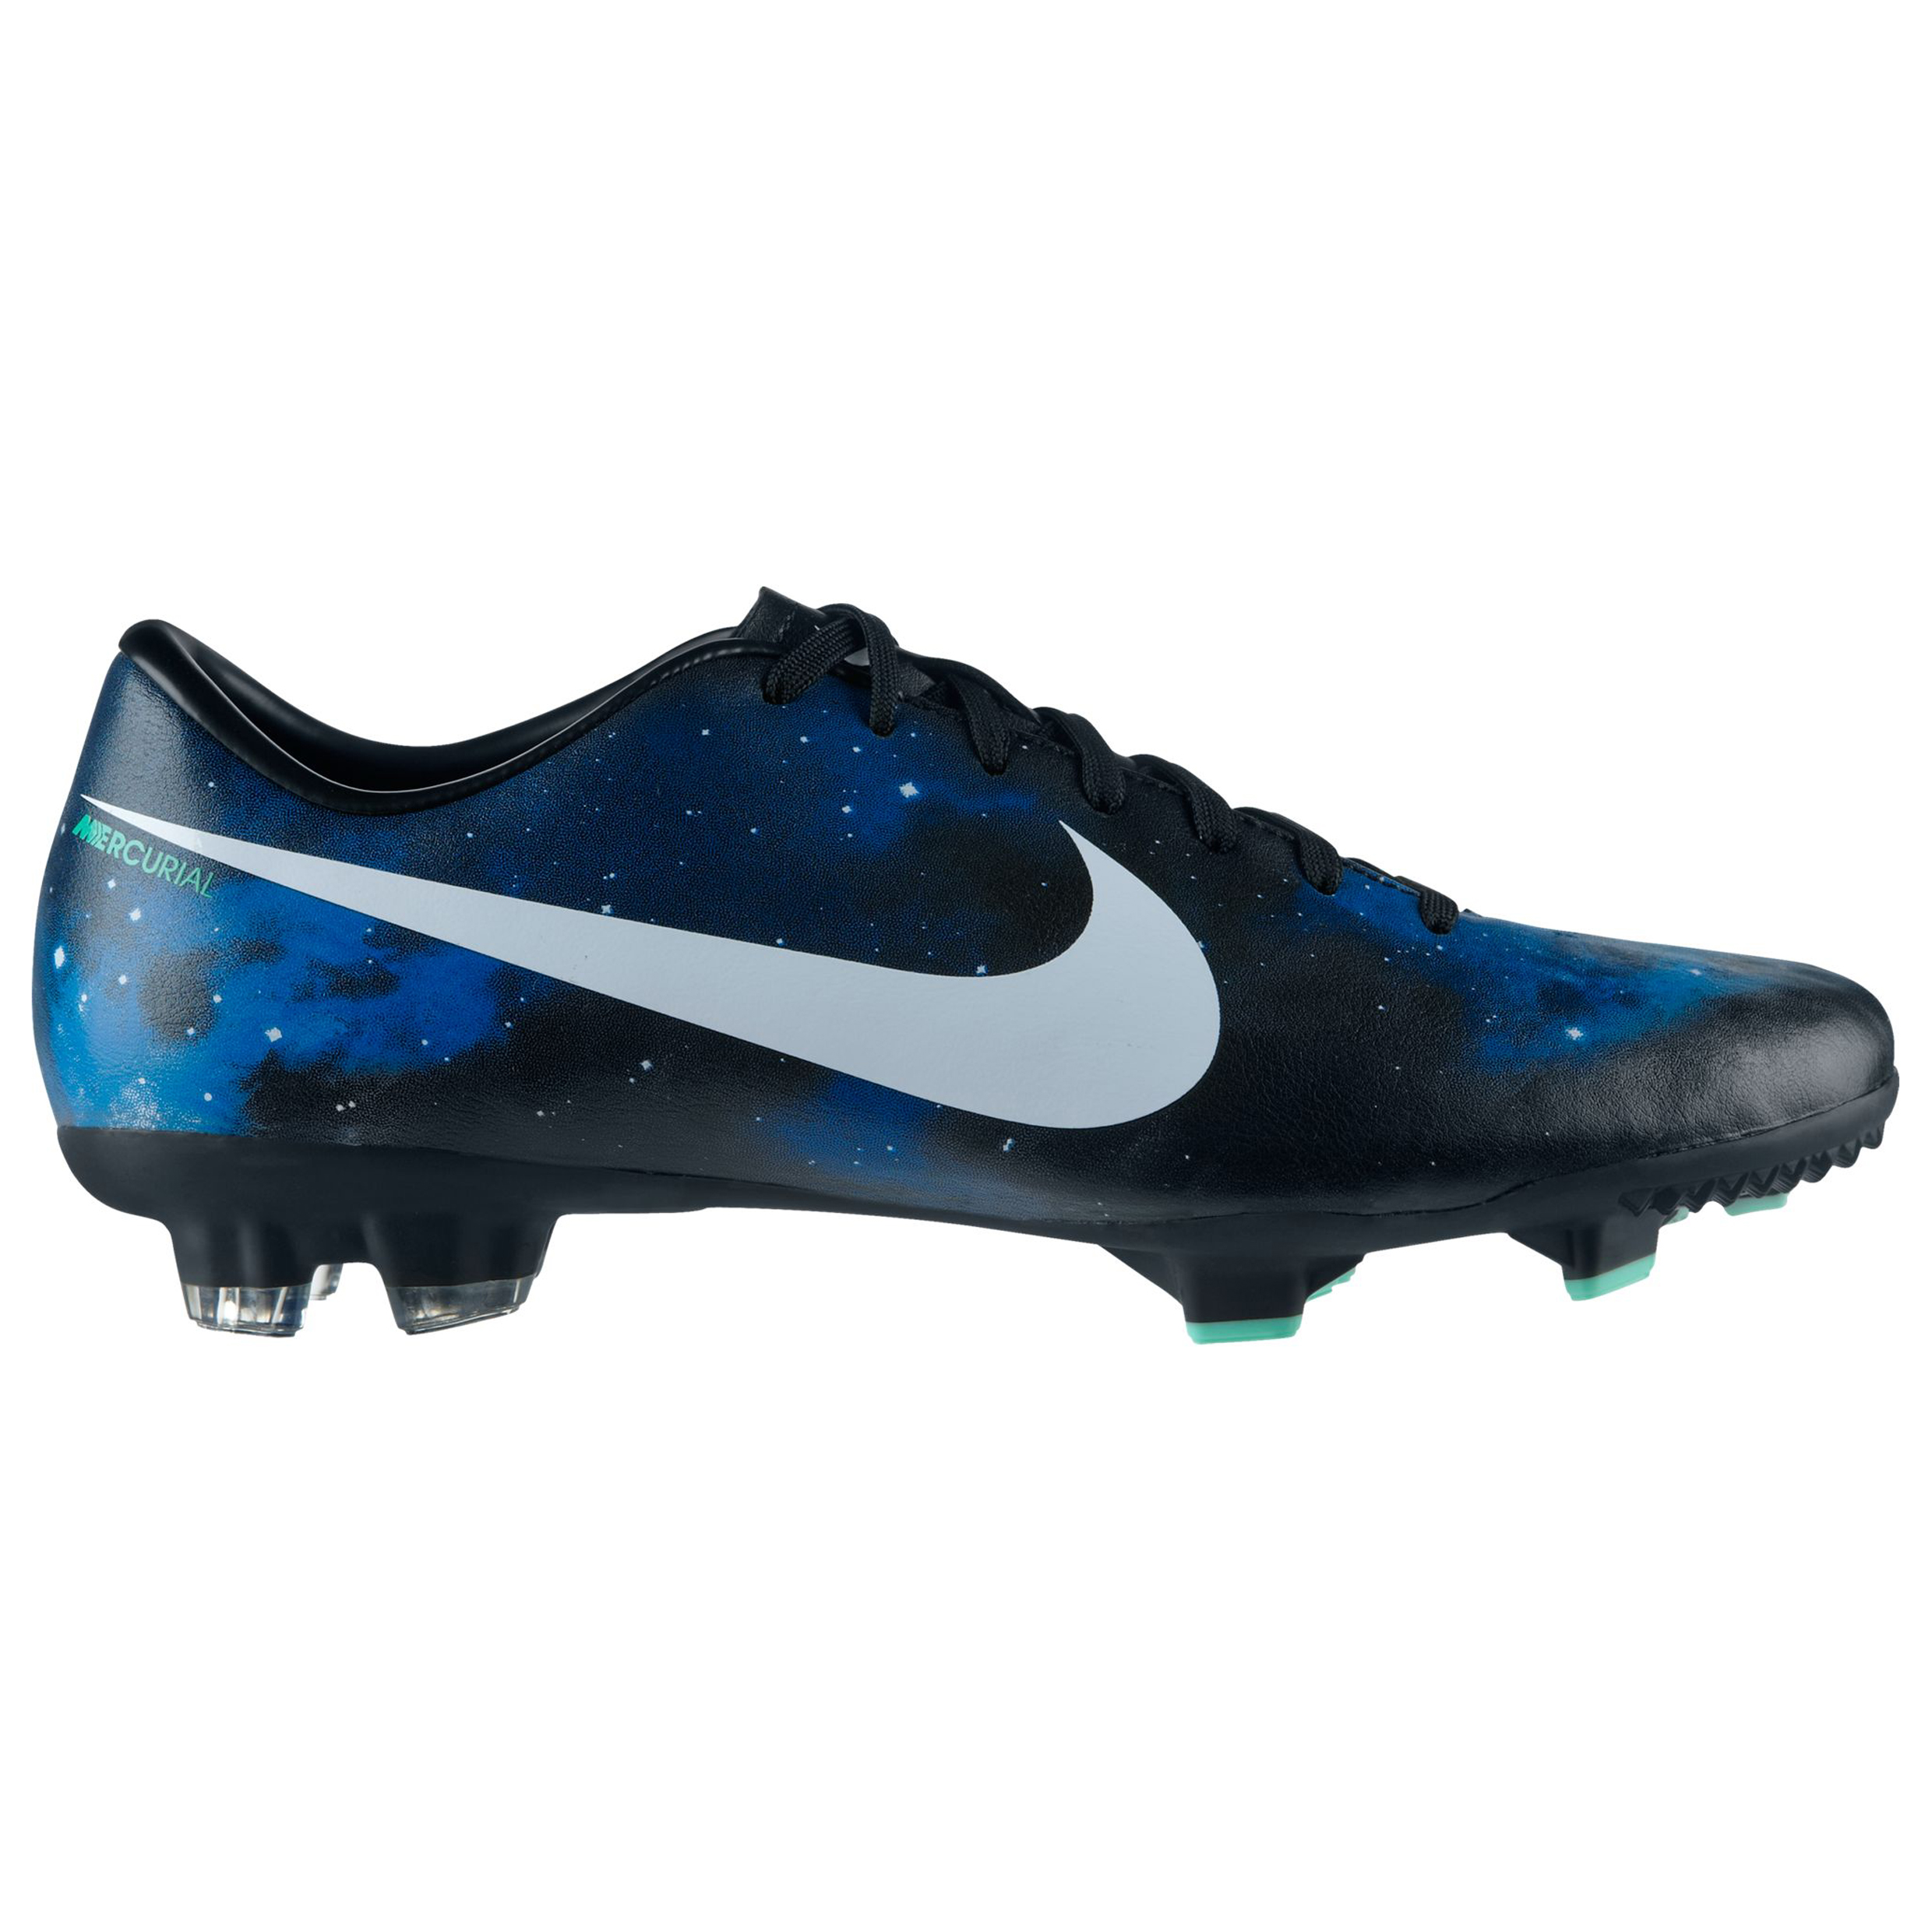 Nike Mercurial Victory IV CR Firm Ground Football Boots- Dark Obsidian/Metallic Plantinum/Green Glow/Black Navy